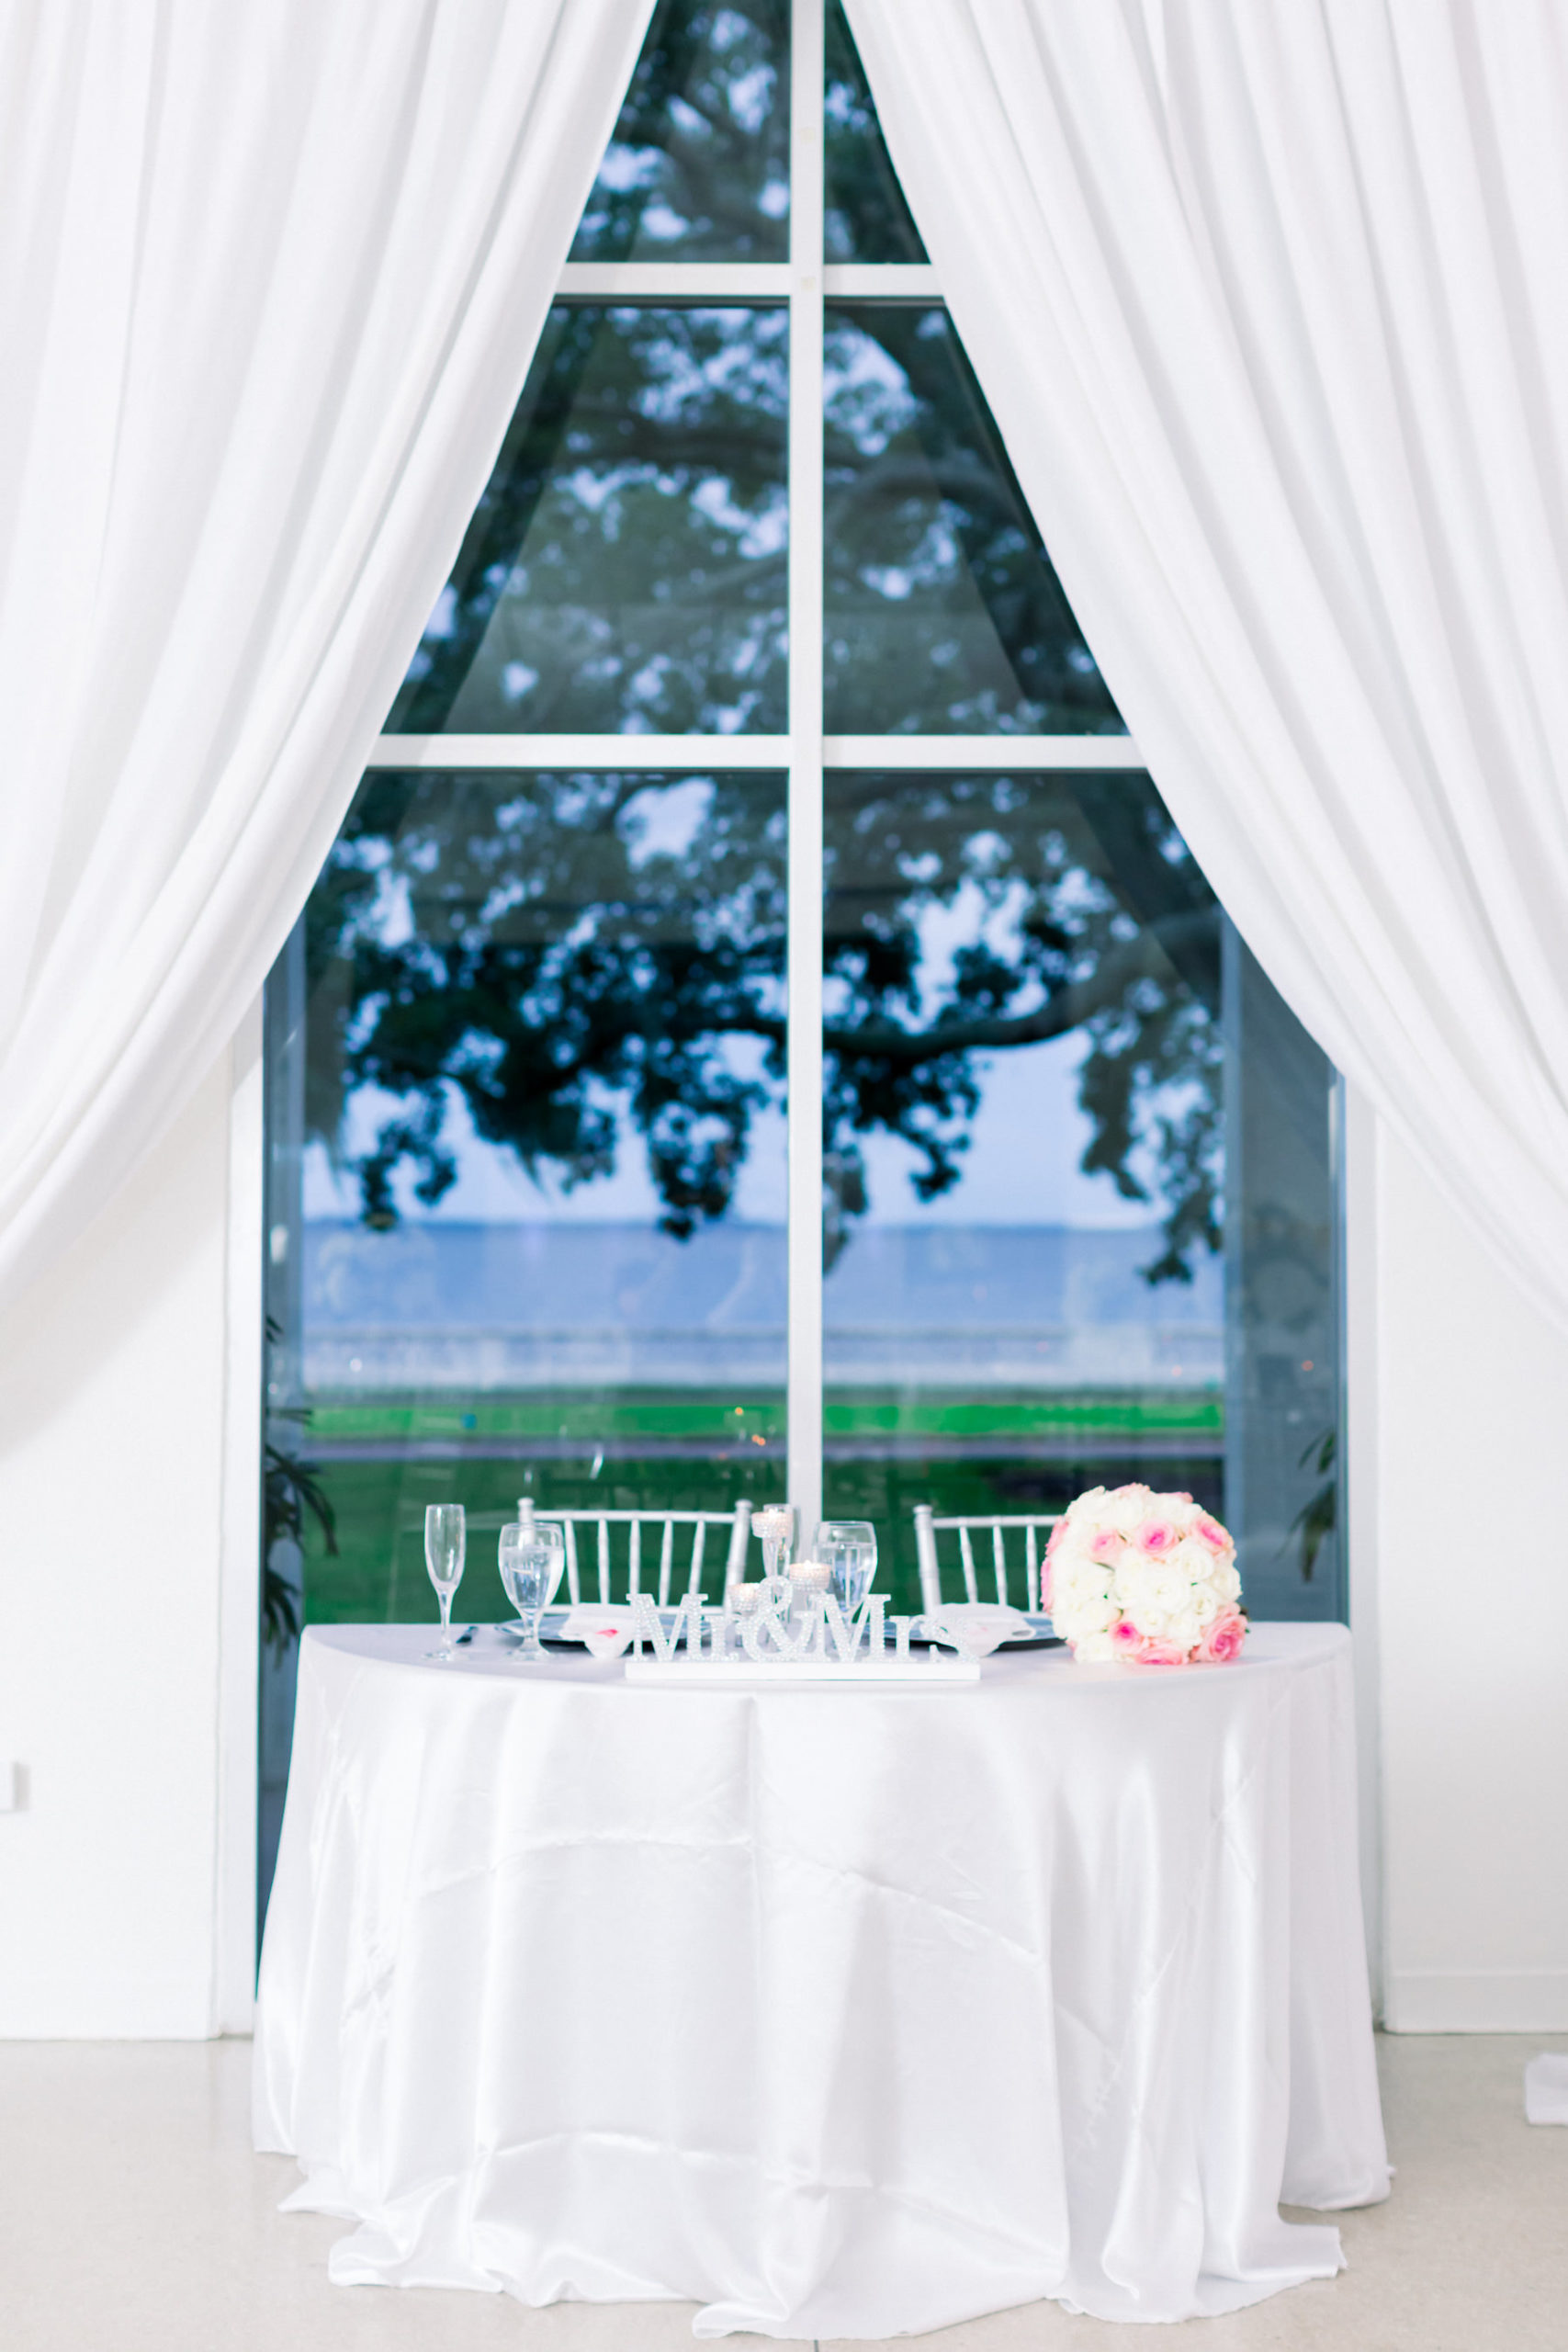 Garden-Glam Wedding Reception Decor, Waterfront View Sweetheart Table with White Linen, Pink and White Roses Floral Bouquet, White Draping | Wedding Venue Tampa Garden Club | Wedding Photographer Shauna and Jordon Photography